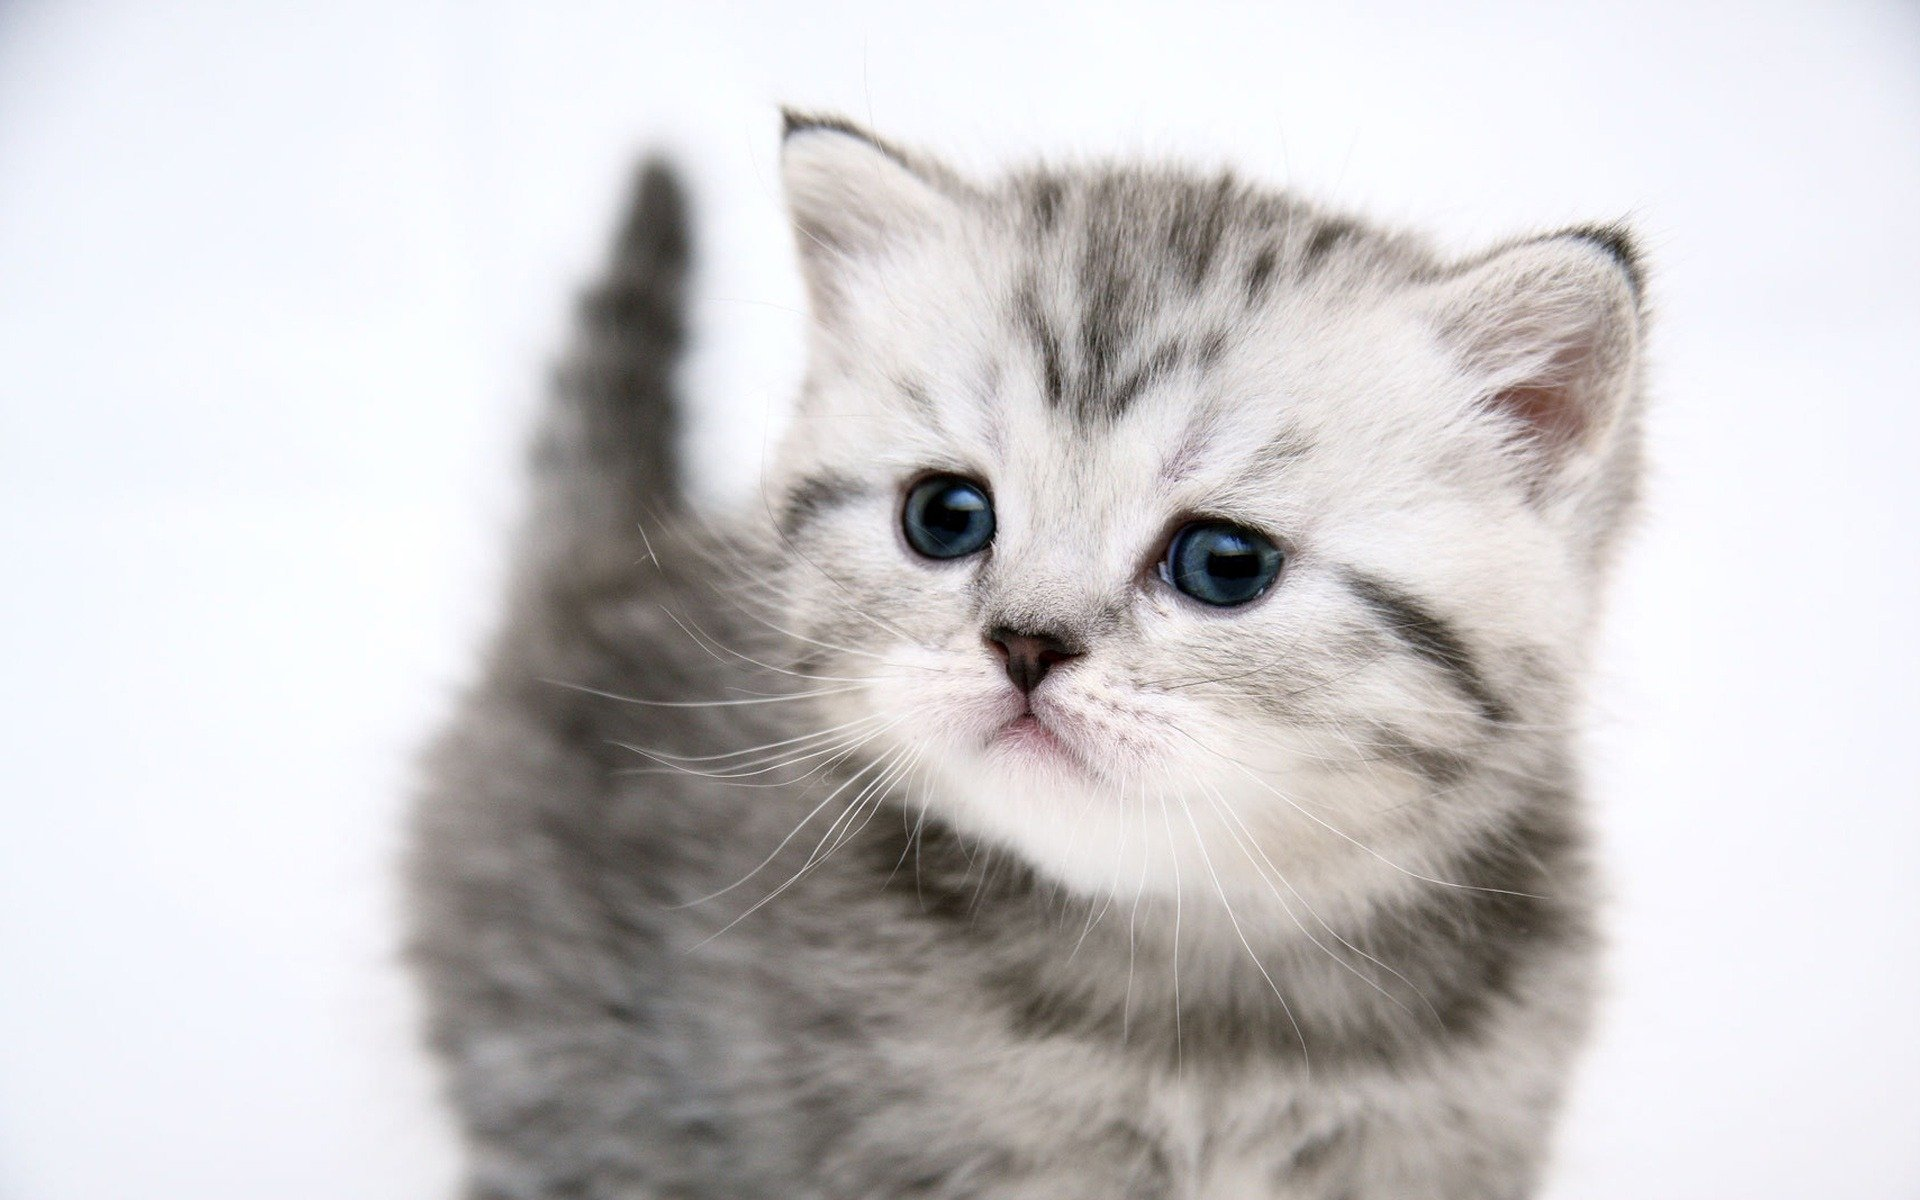 small cute kitty wallpapers 24216 1920x1200jpg 1920x1200